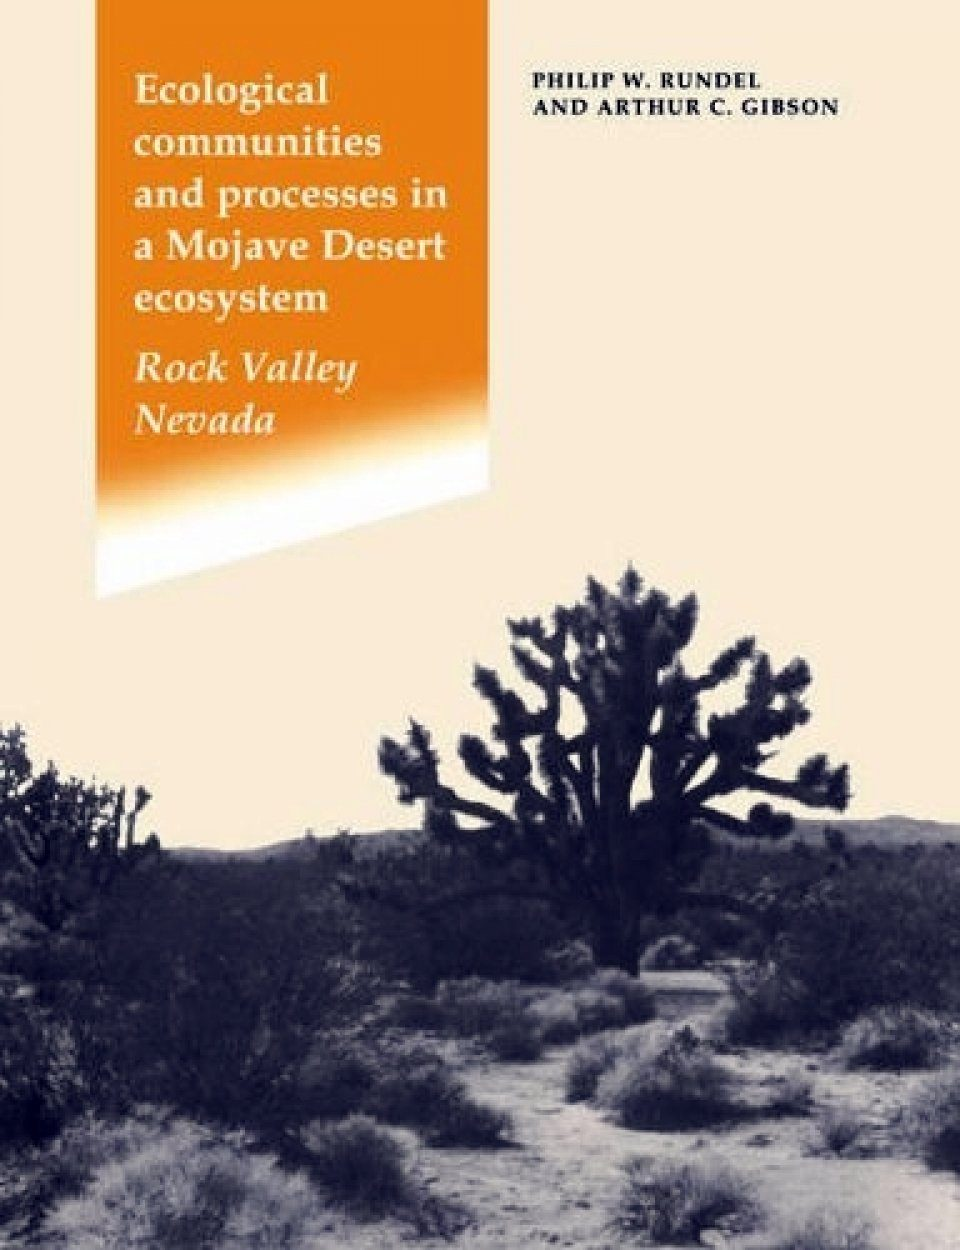 Ecological Communities and Processes in a Mojave Desert Ecosystem